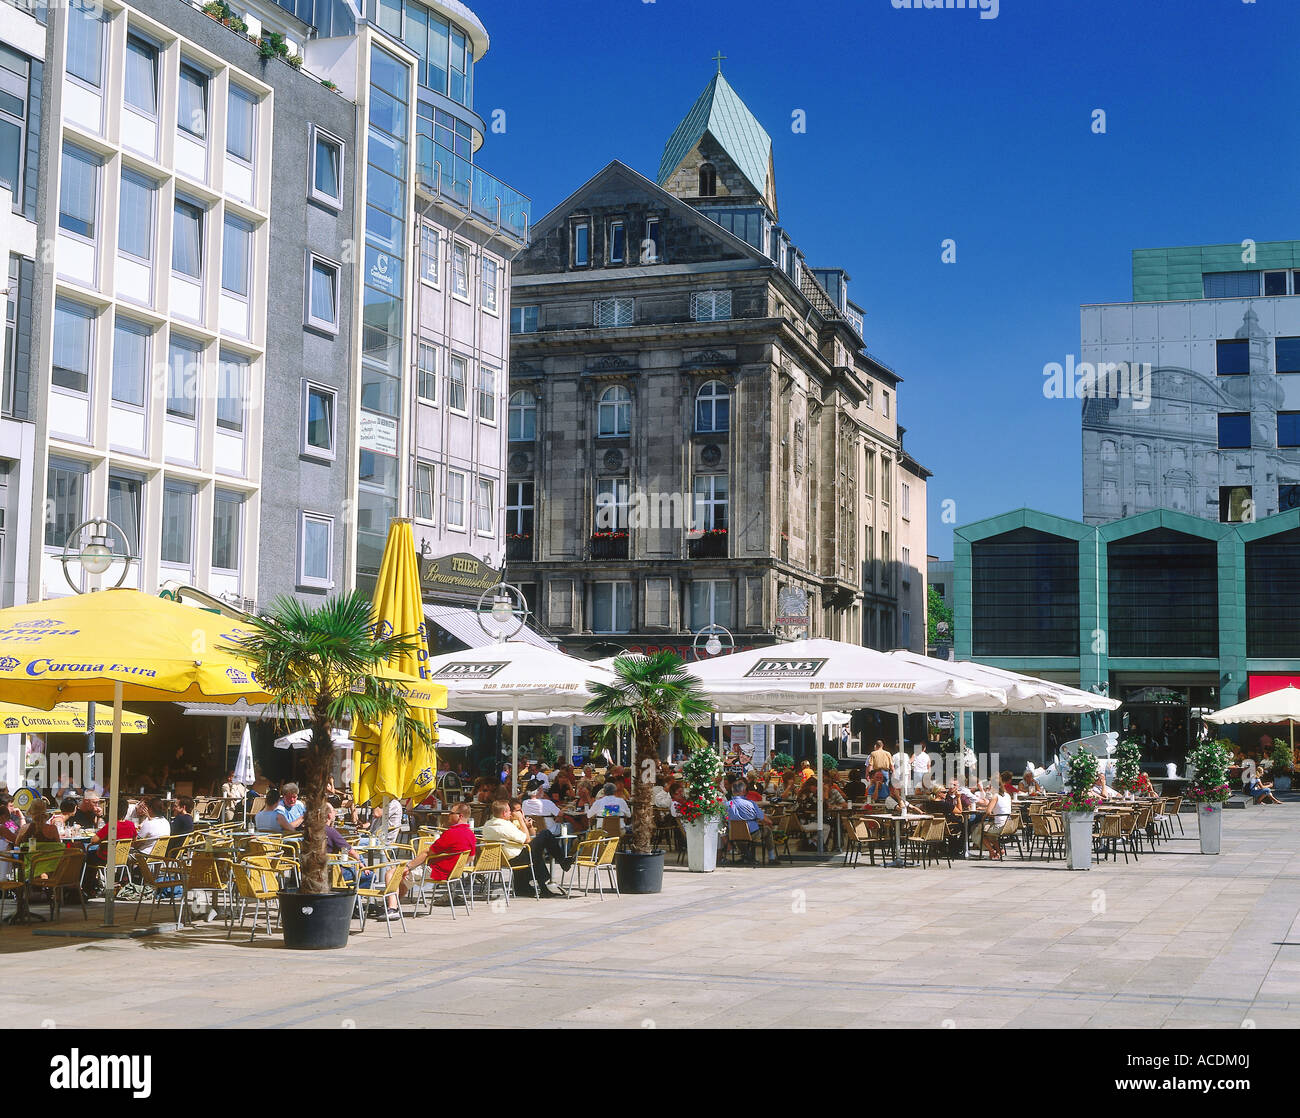 Dortmund Shopping Center Geography Travel Germany North Rhine Westfalia